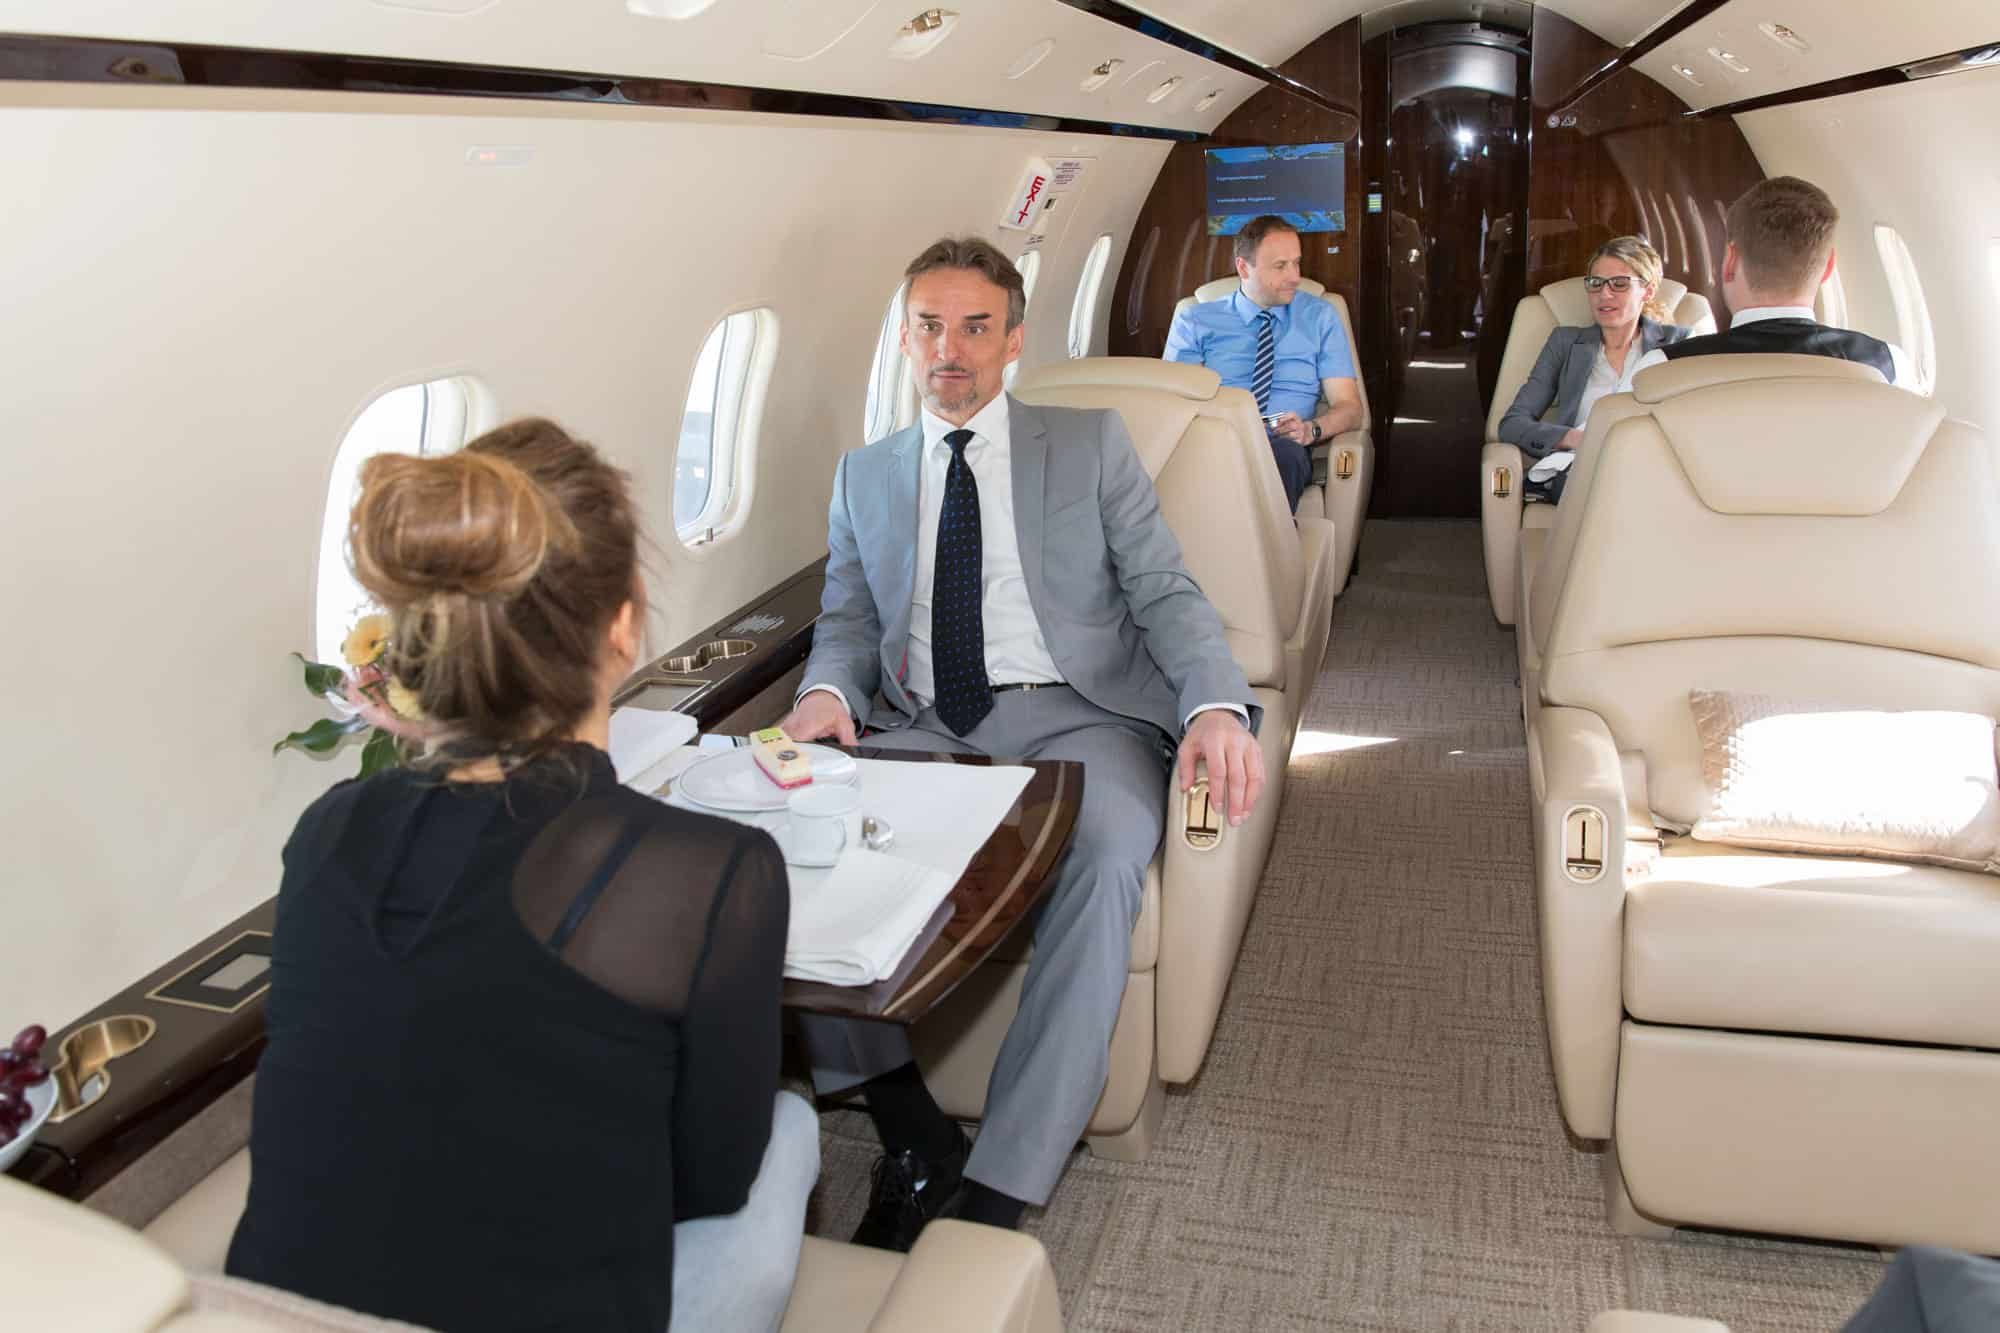 Passengers on a private jet